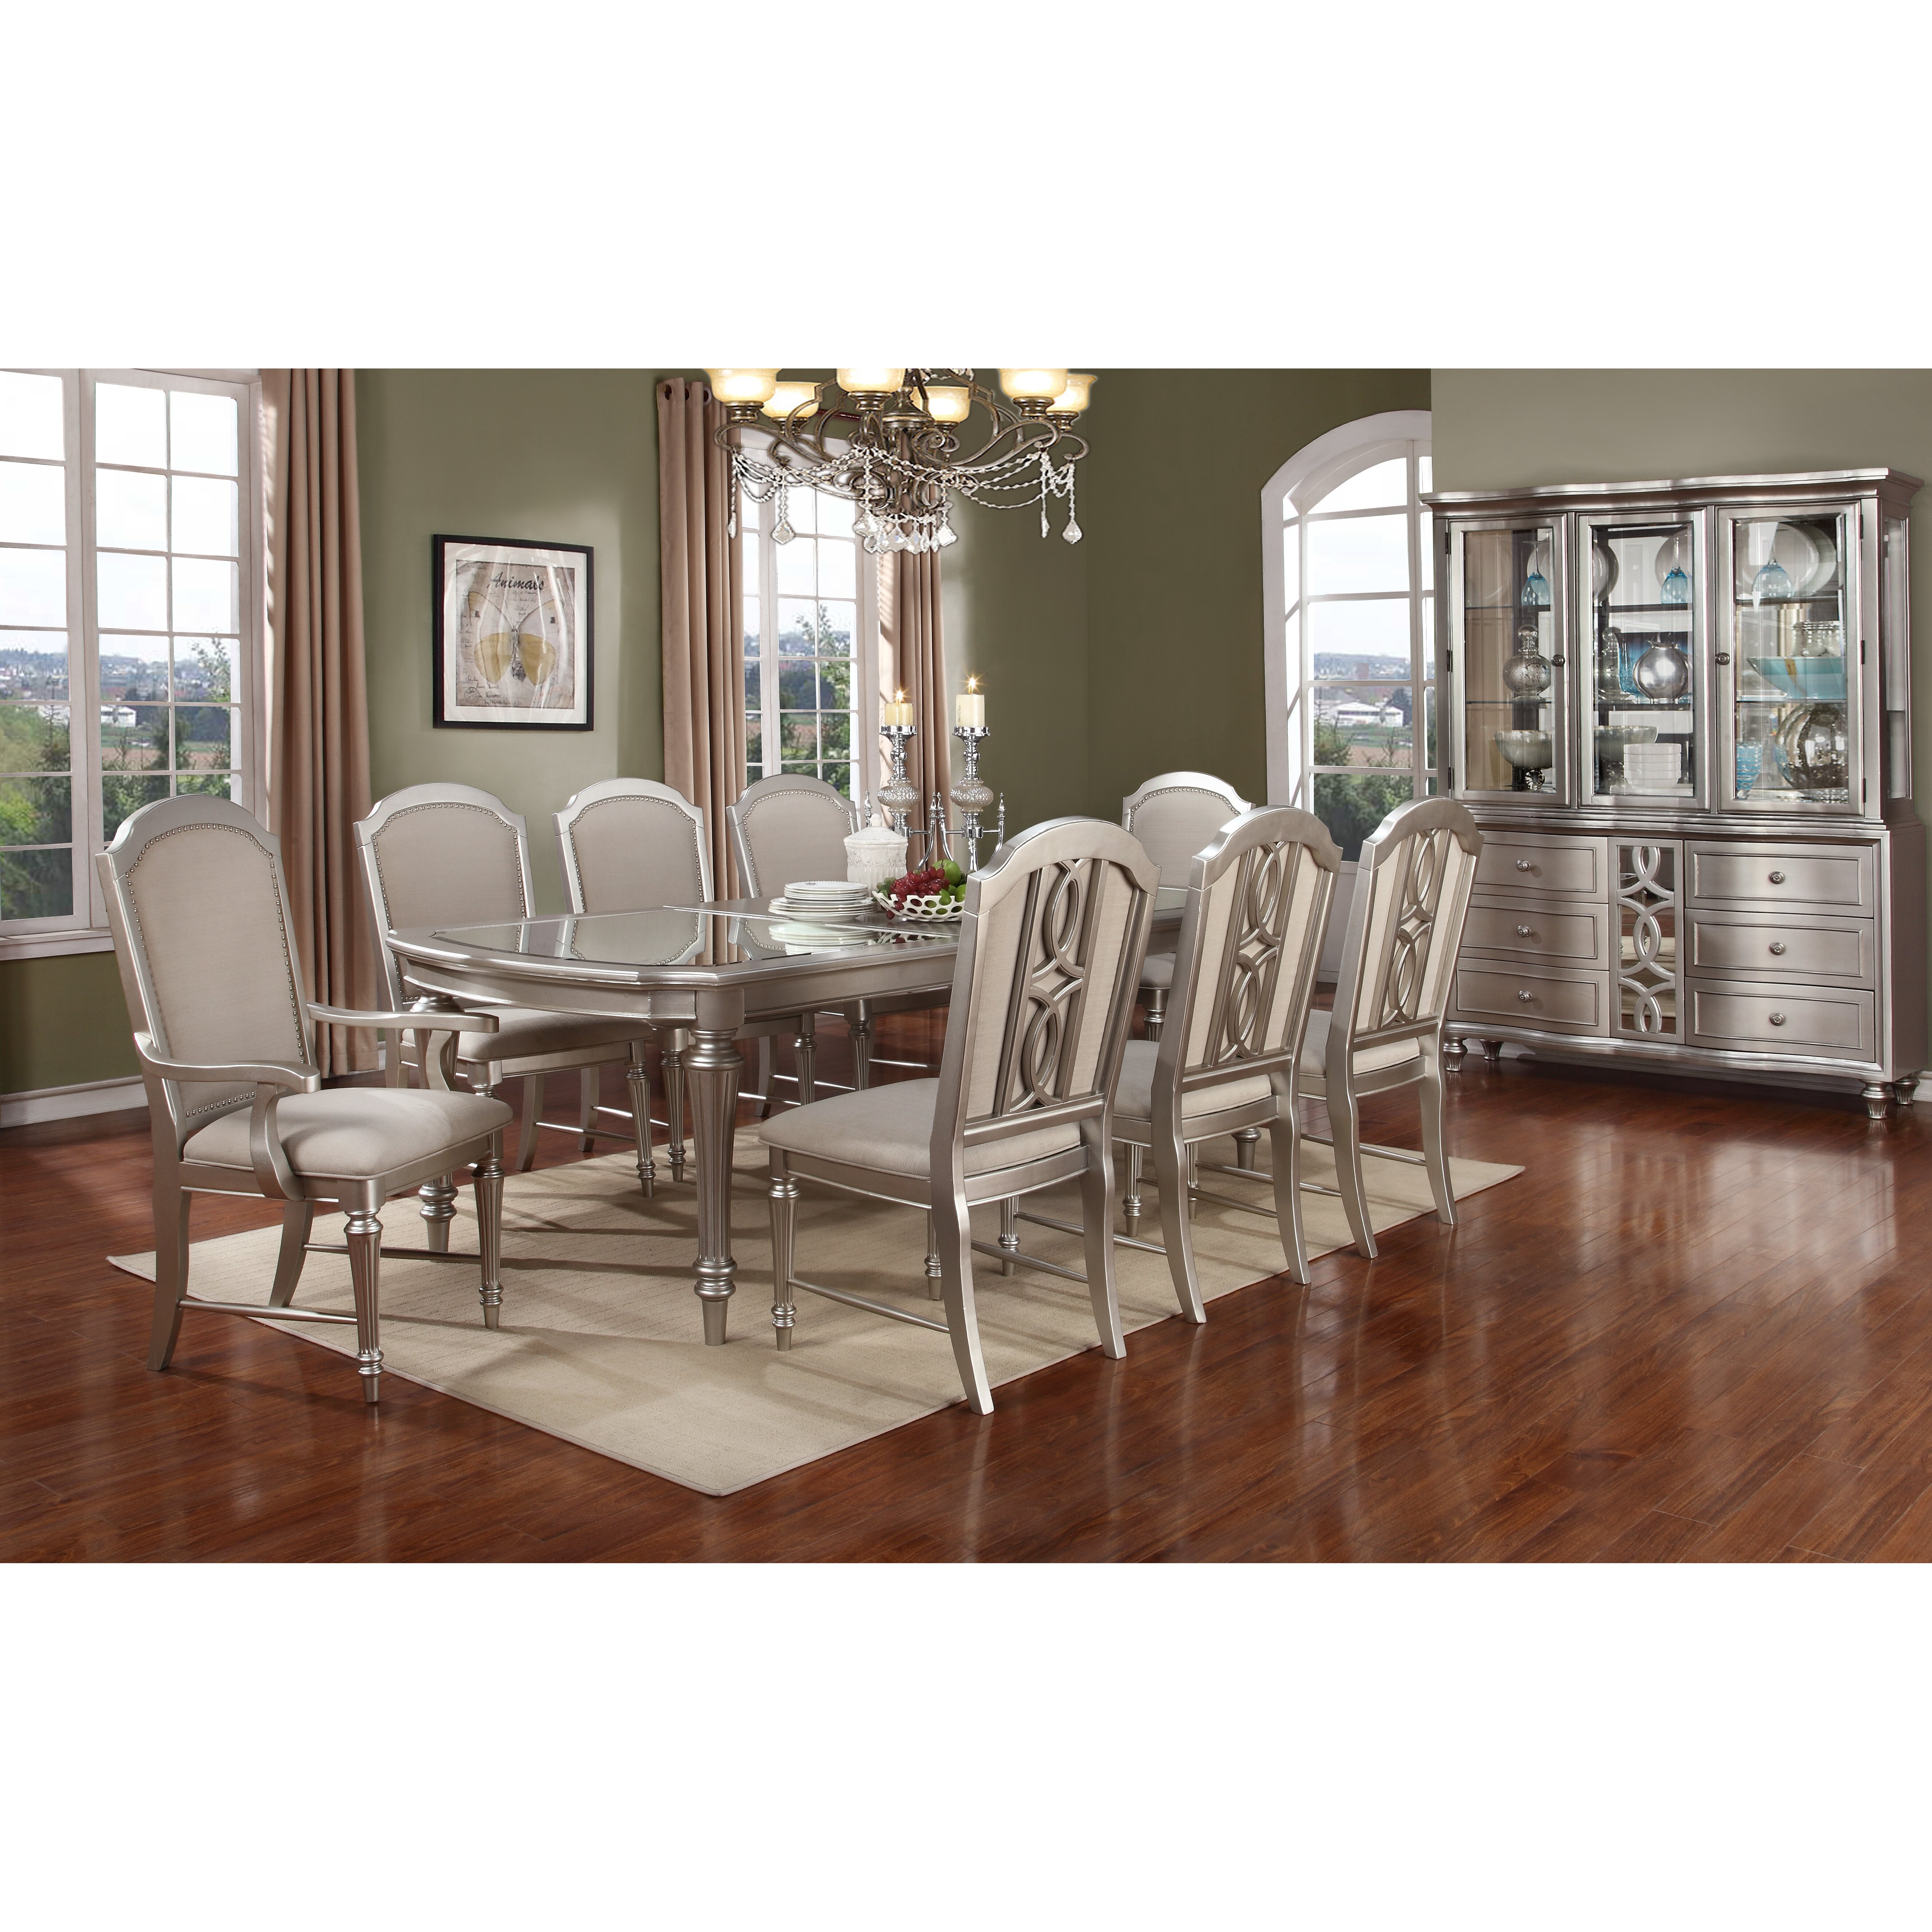 Avalon furniture regency park 9 piece dining set reviews wayfair for Regency furniture living room sets